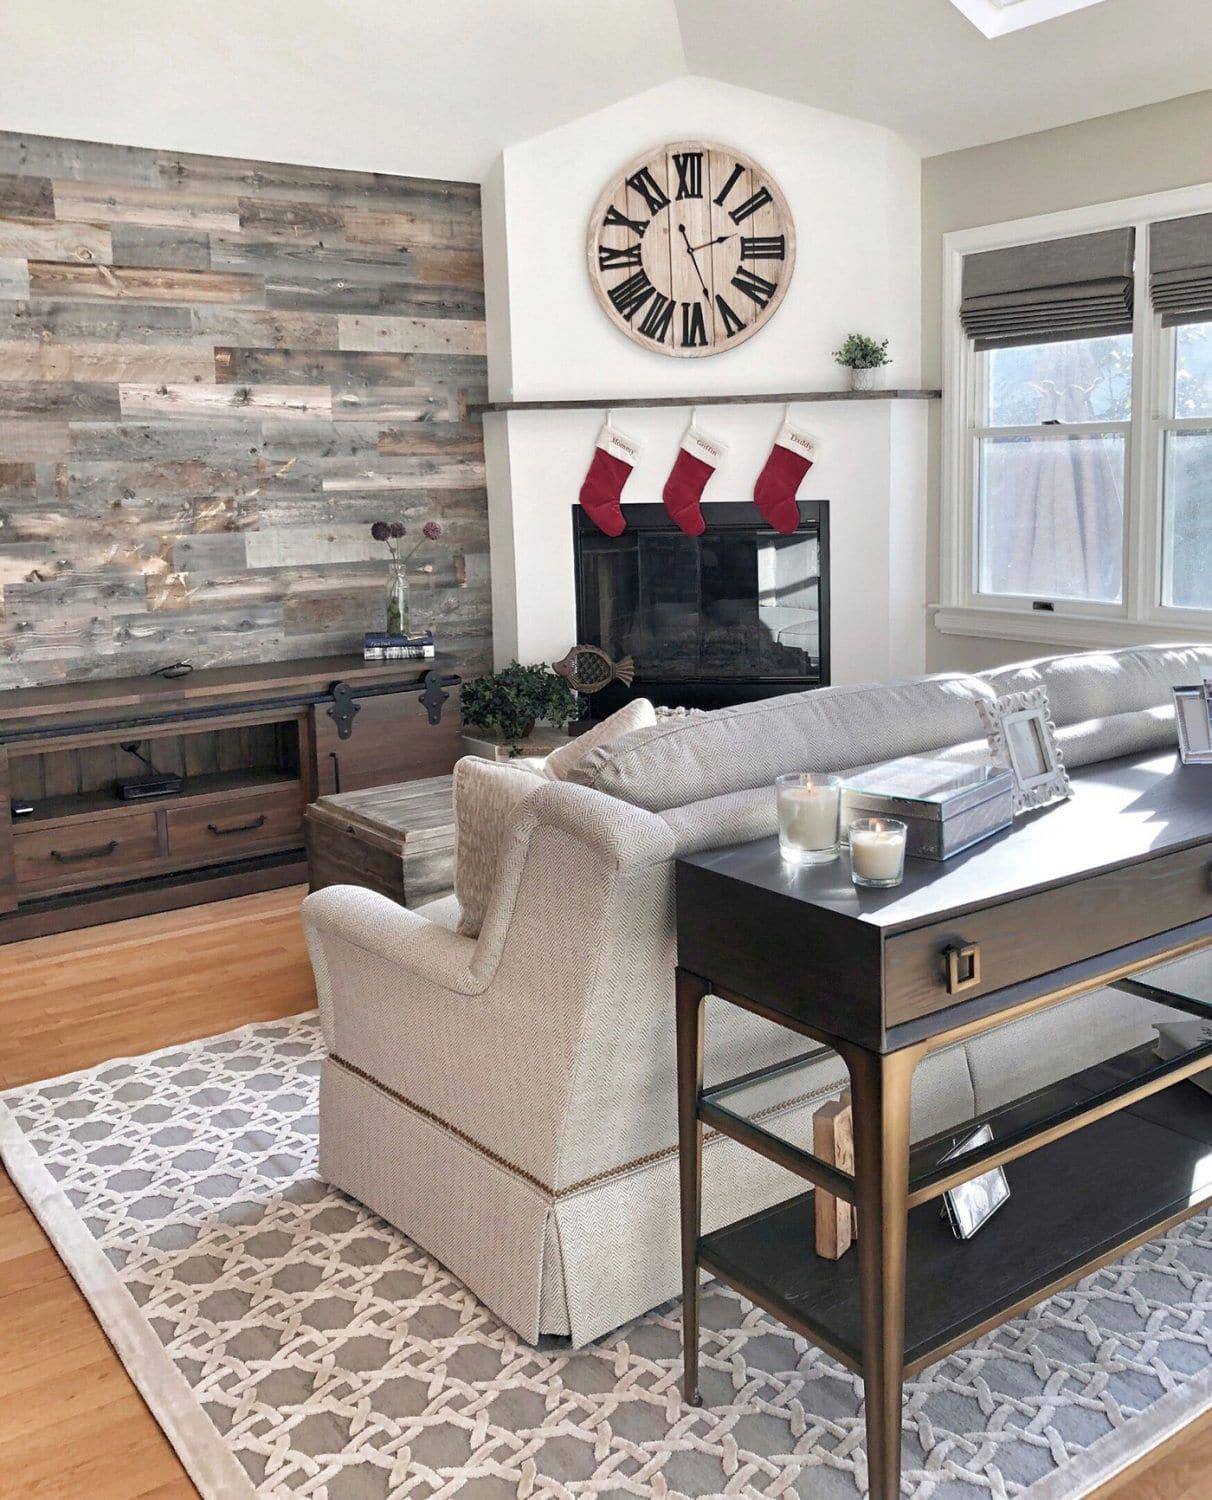 Stylish Fireplace Mantels - Evenflow Interiors